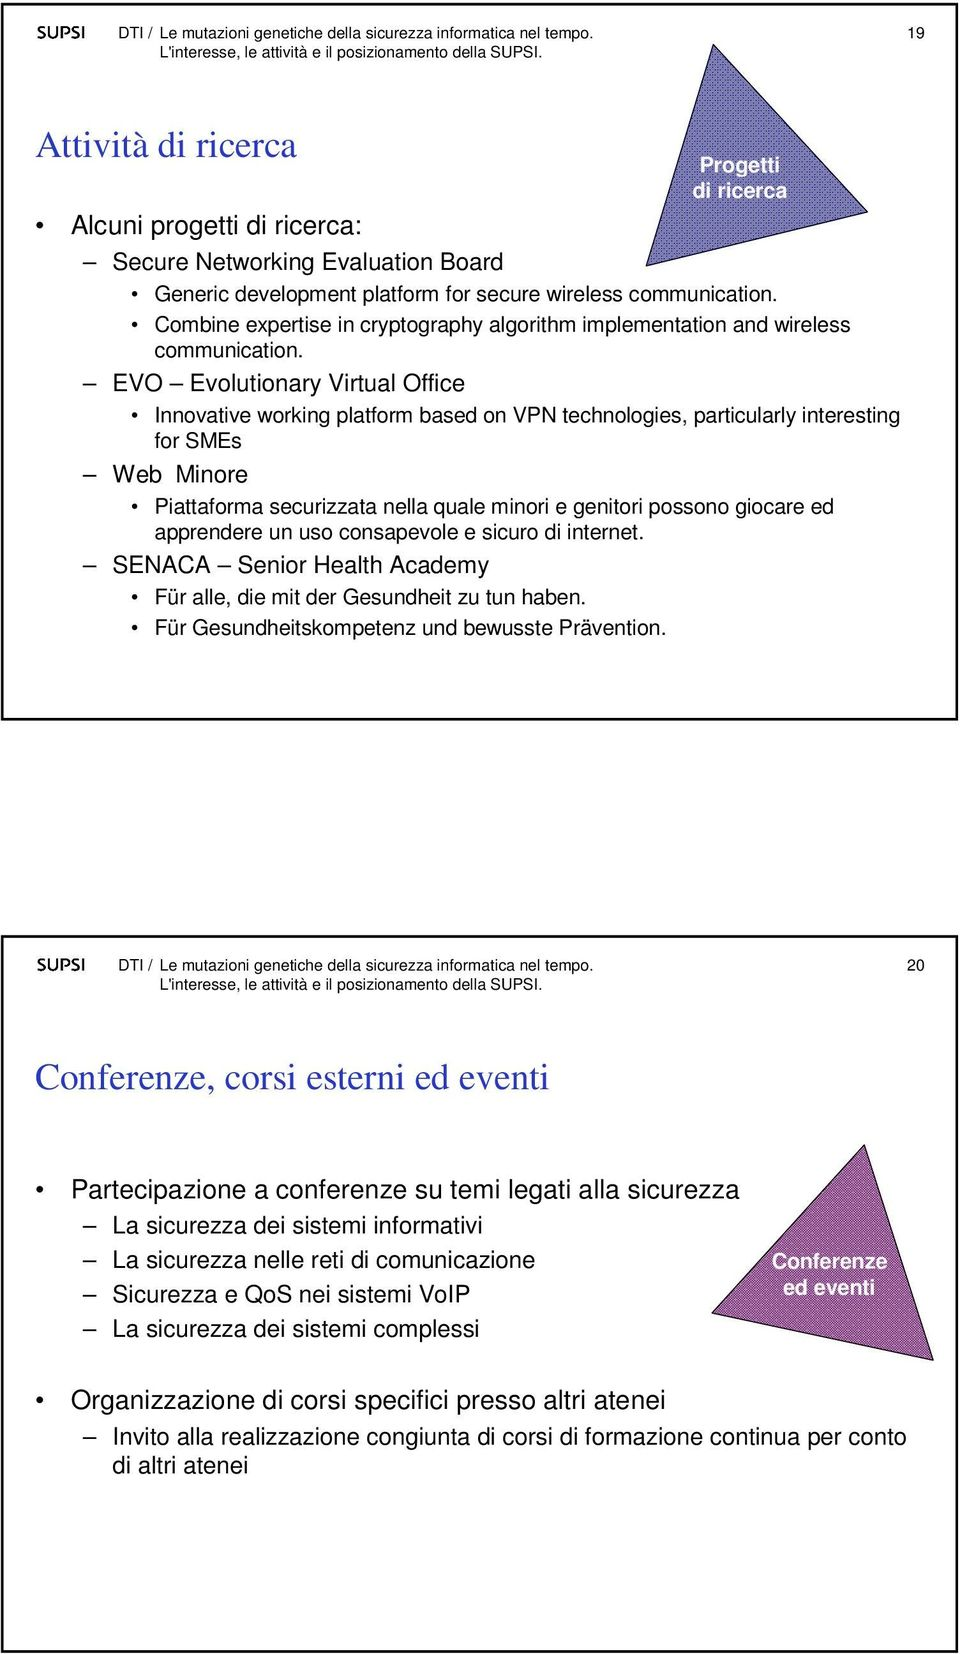 EVO Evolutionary Virtual Office Innovative working platform based on VPN technologies, particularly interesting for SMEs Web Minore Piattaforma securizzata nella quale minori e genitori possono